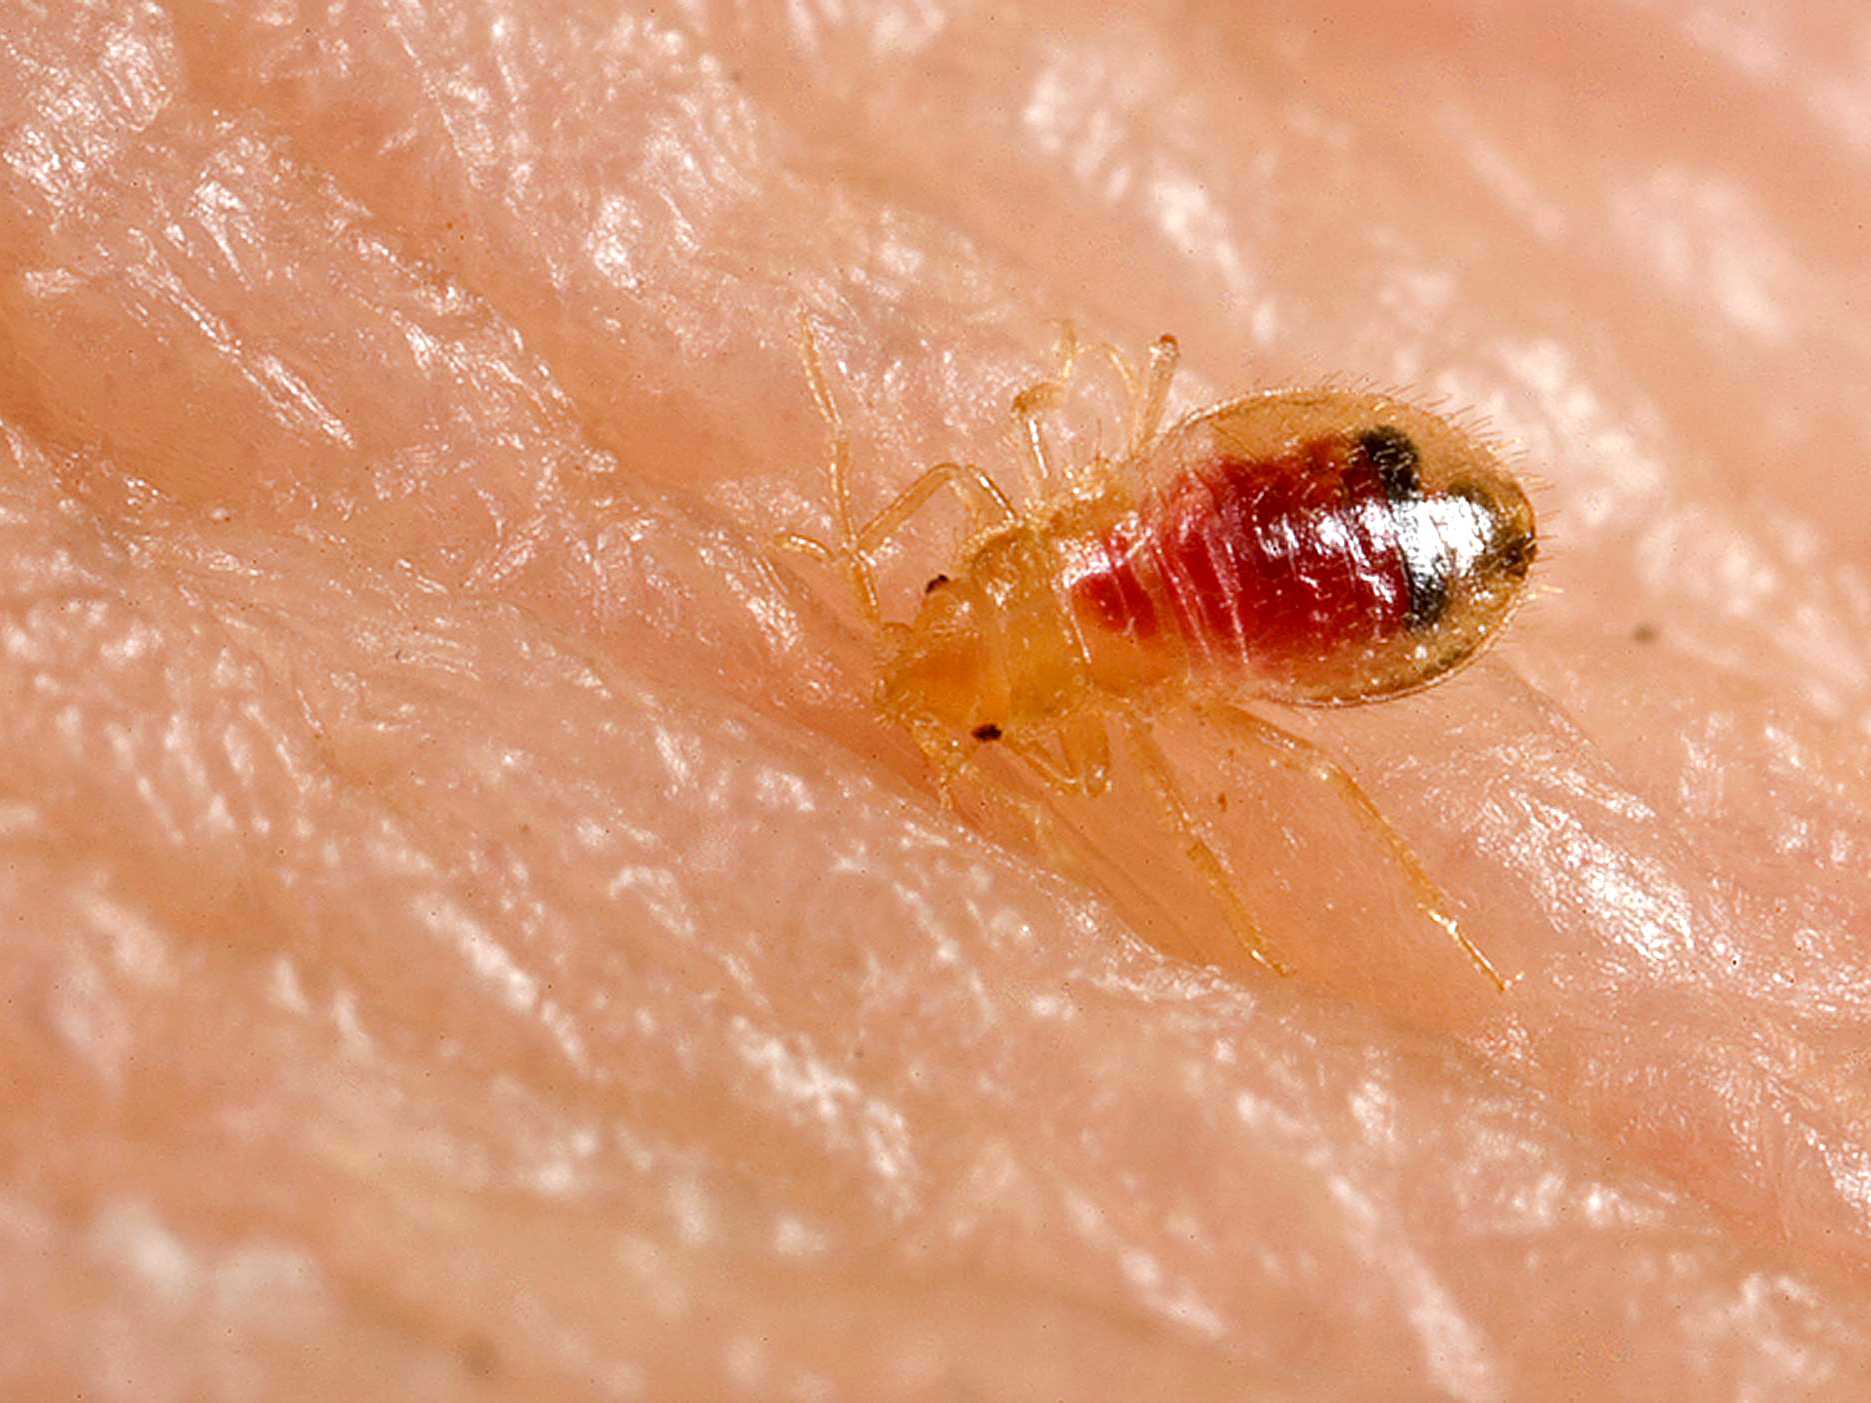 Description Bed bug nymph, Cimex lectularius.jpg